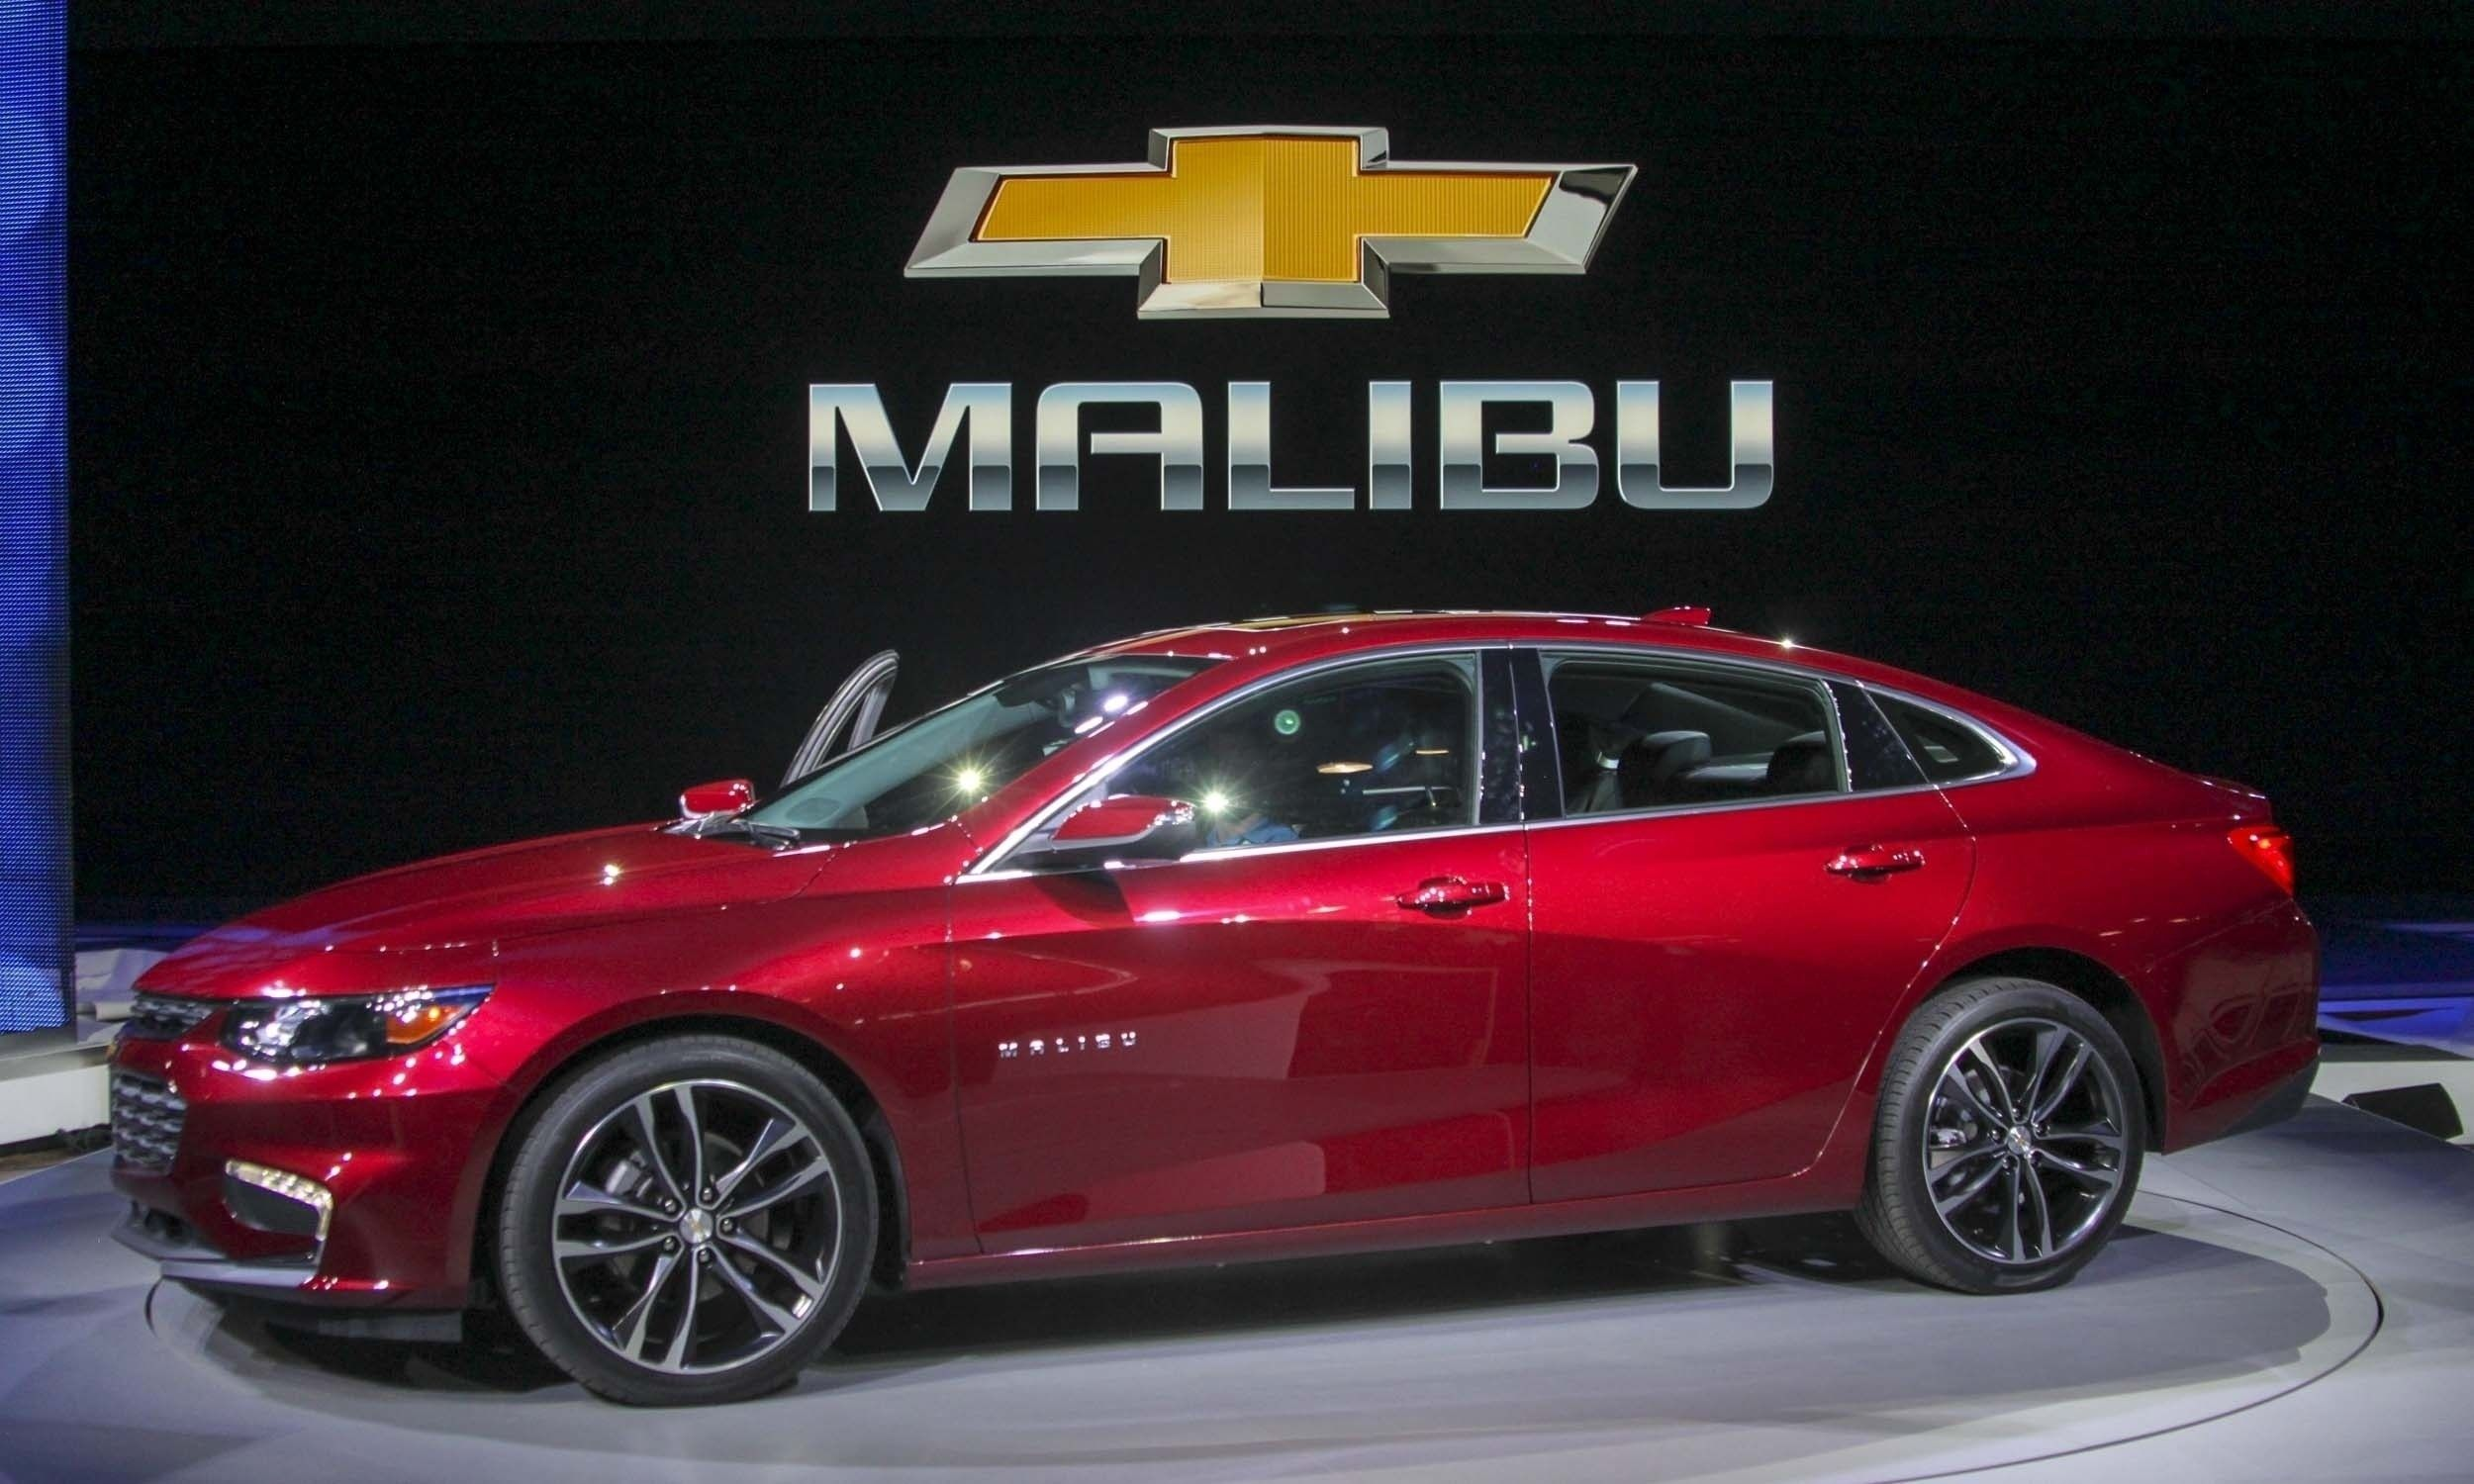 2019 Chevy Malibu New Review This One Is Very Nice